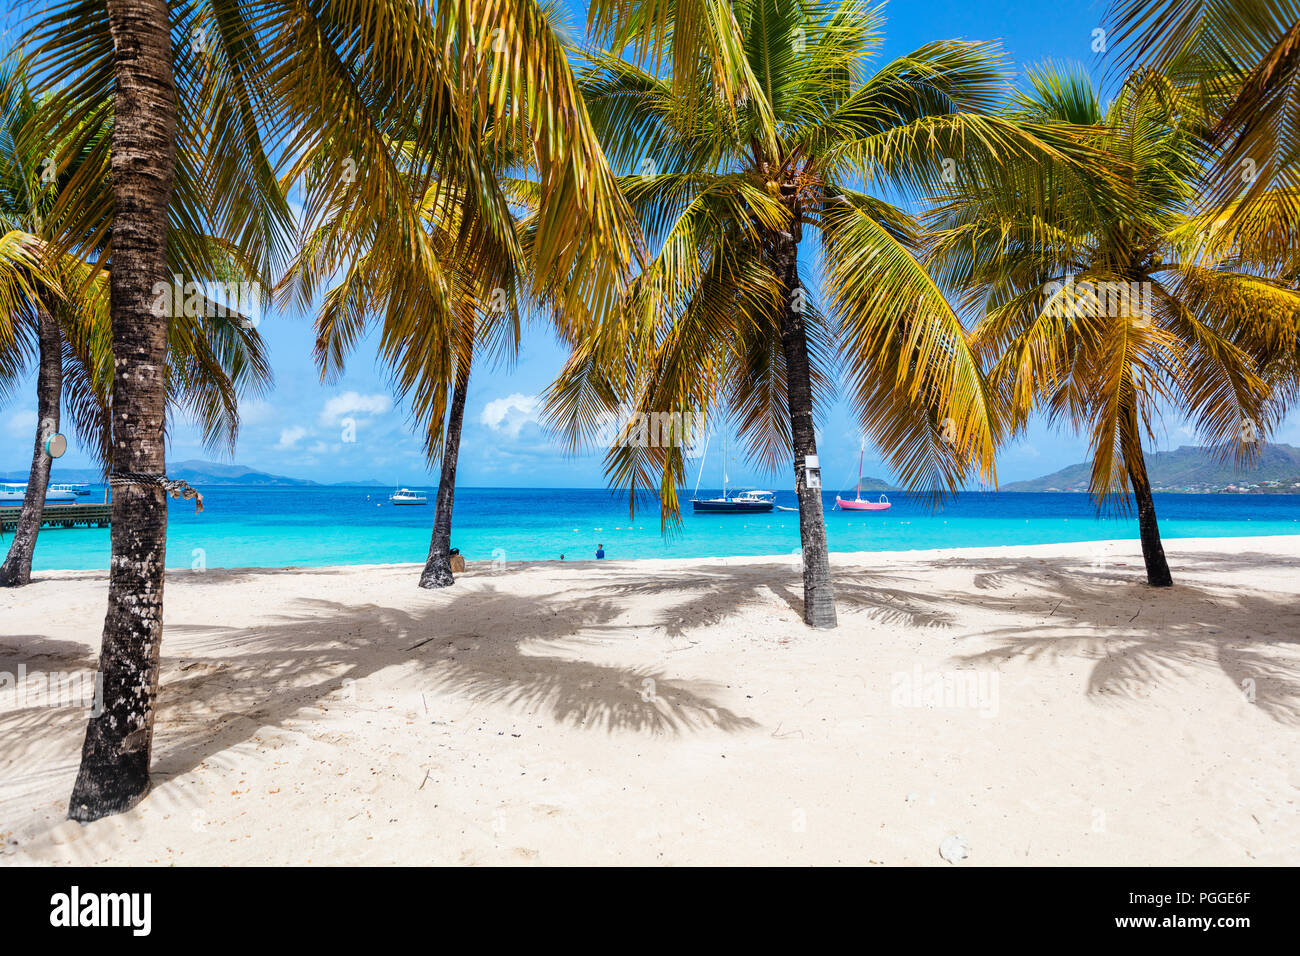 Idyllic tropical beach with white sand, palm trees and turquoise Caribbean sea water on exotic island in St Vincent and the Grenadines - Stock Image